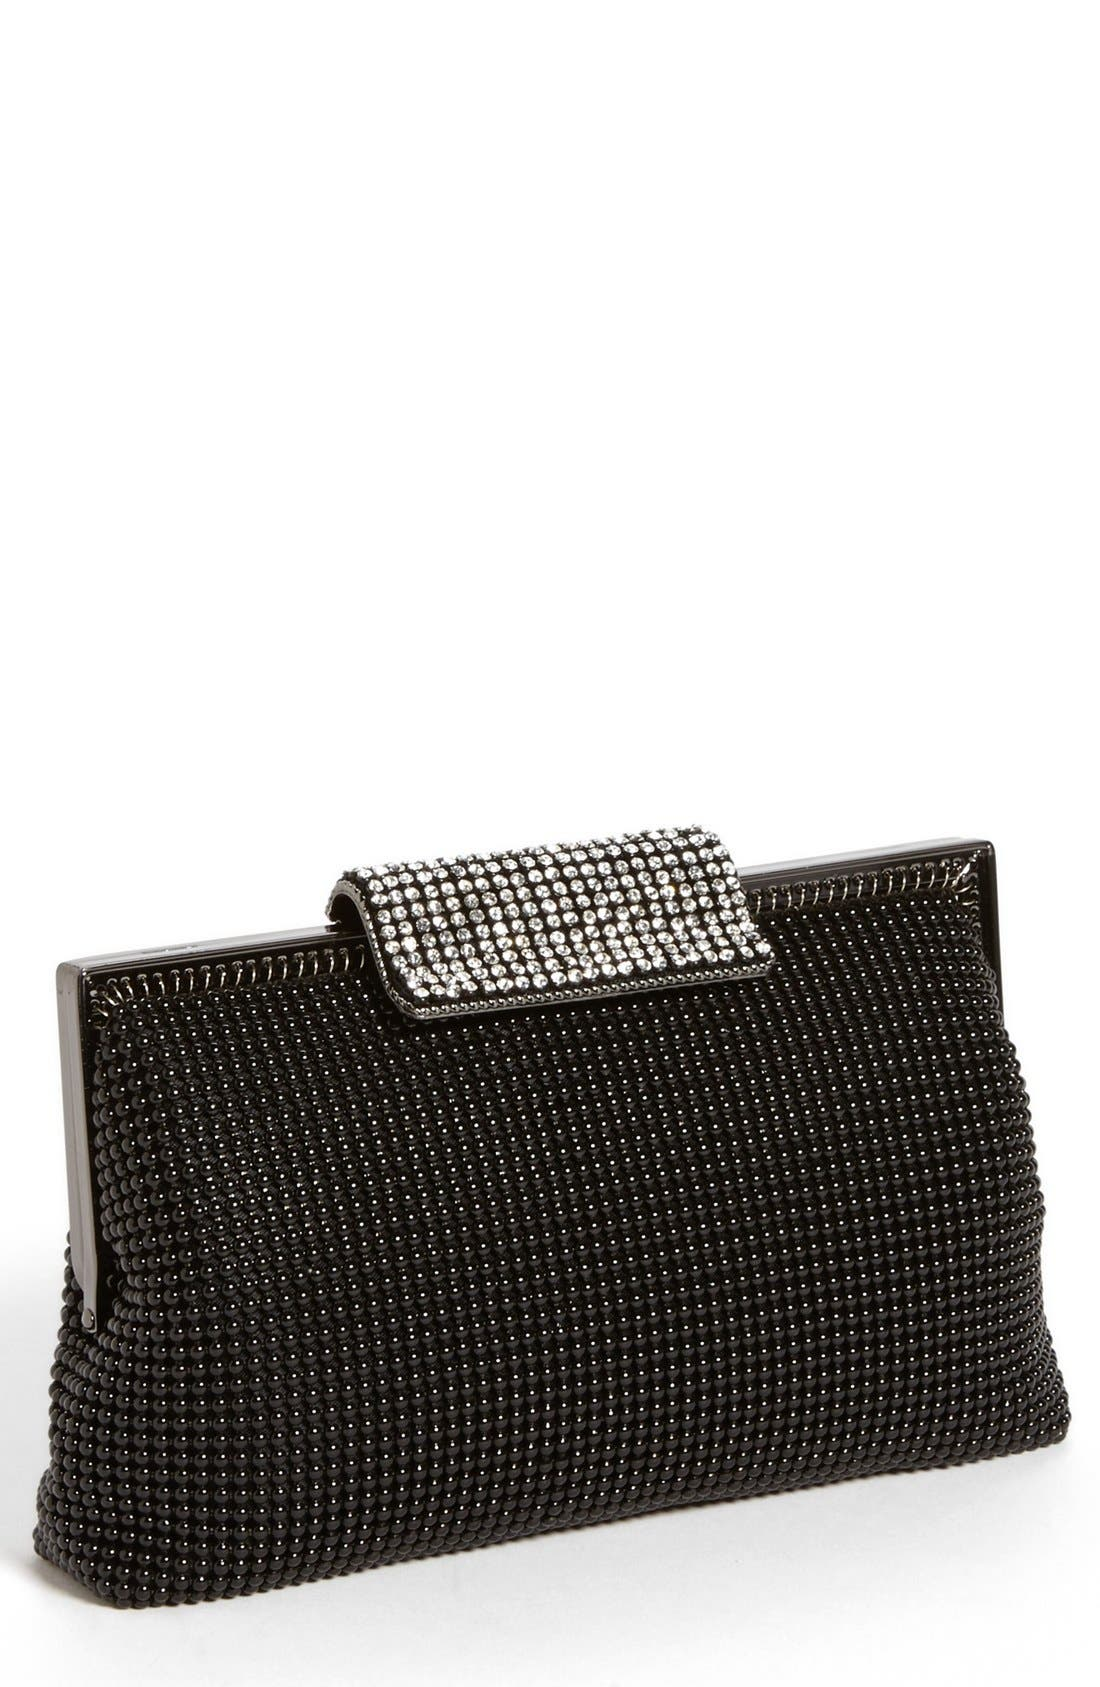 CRYSTAL FRAME CLUTCH - BLACK